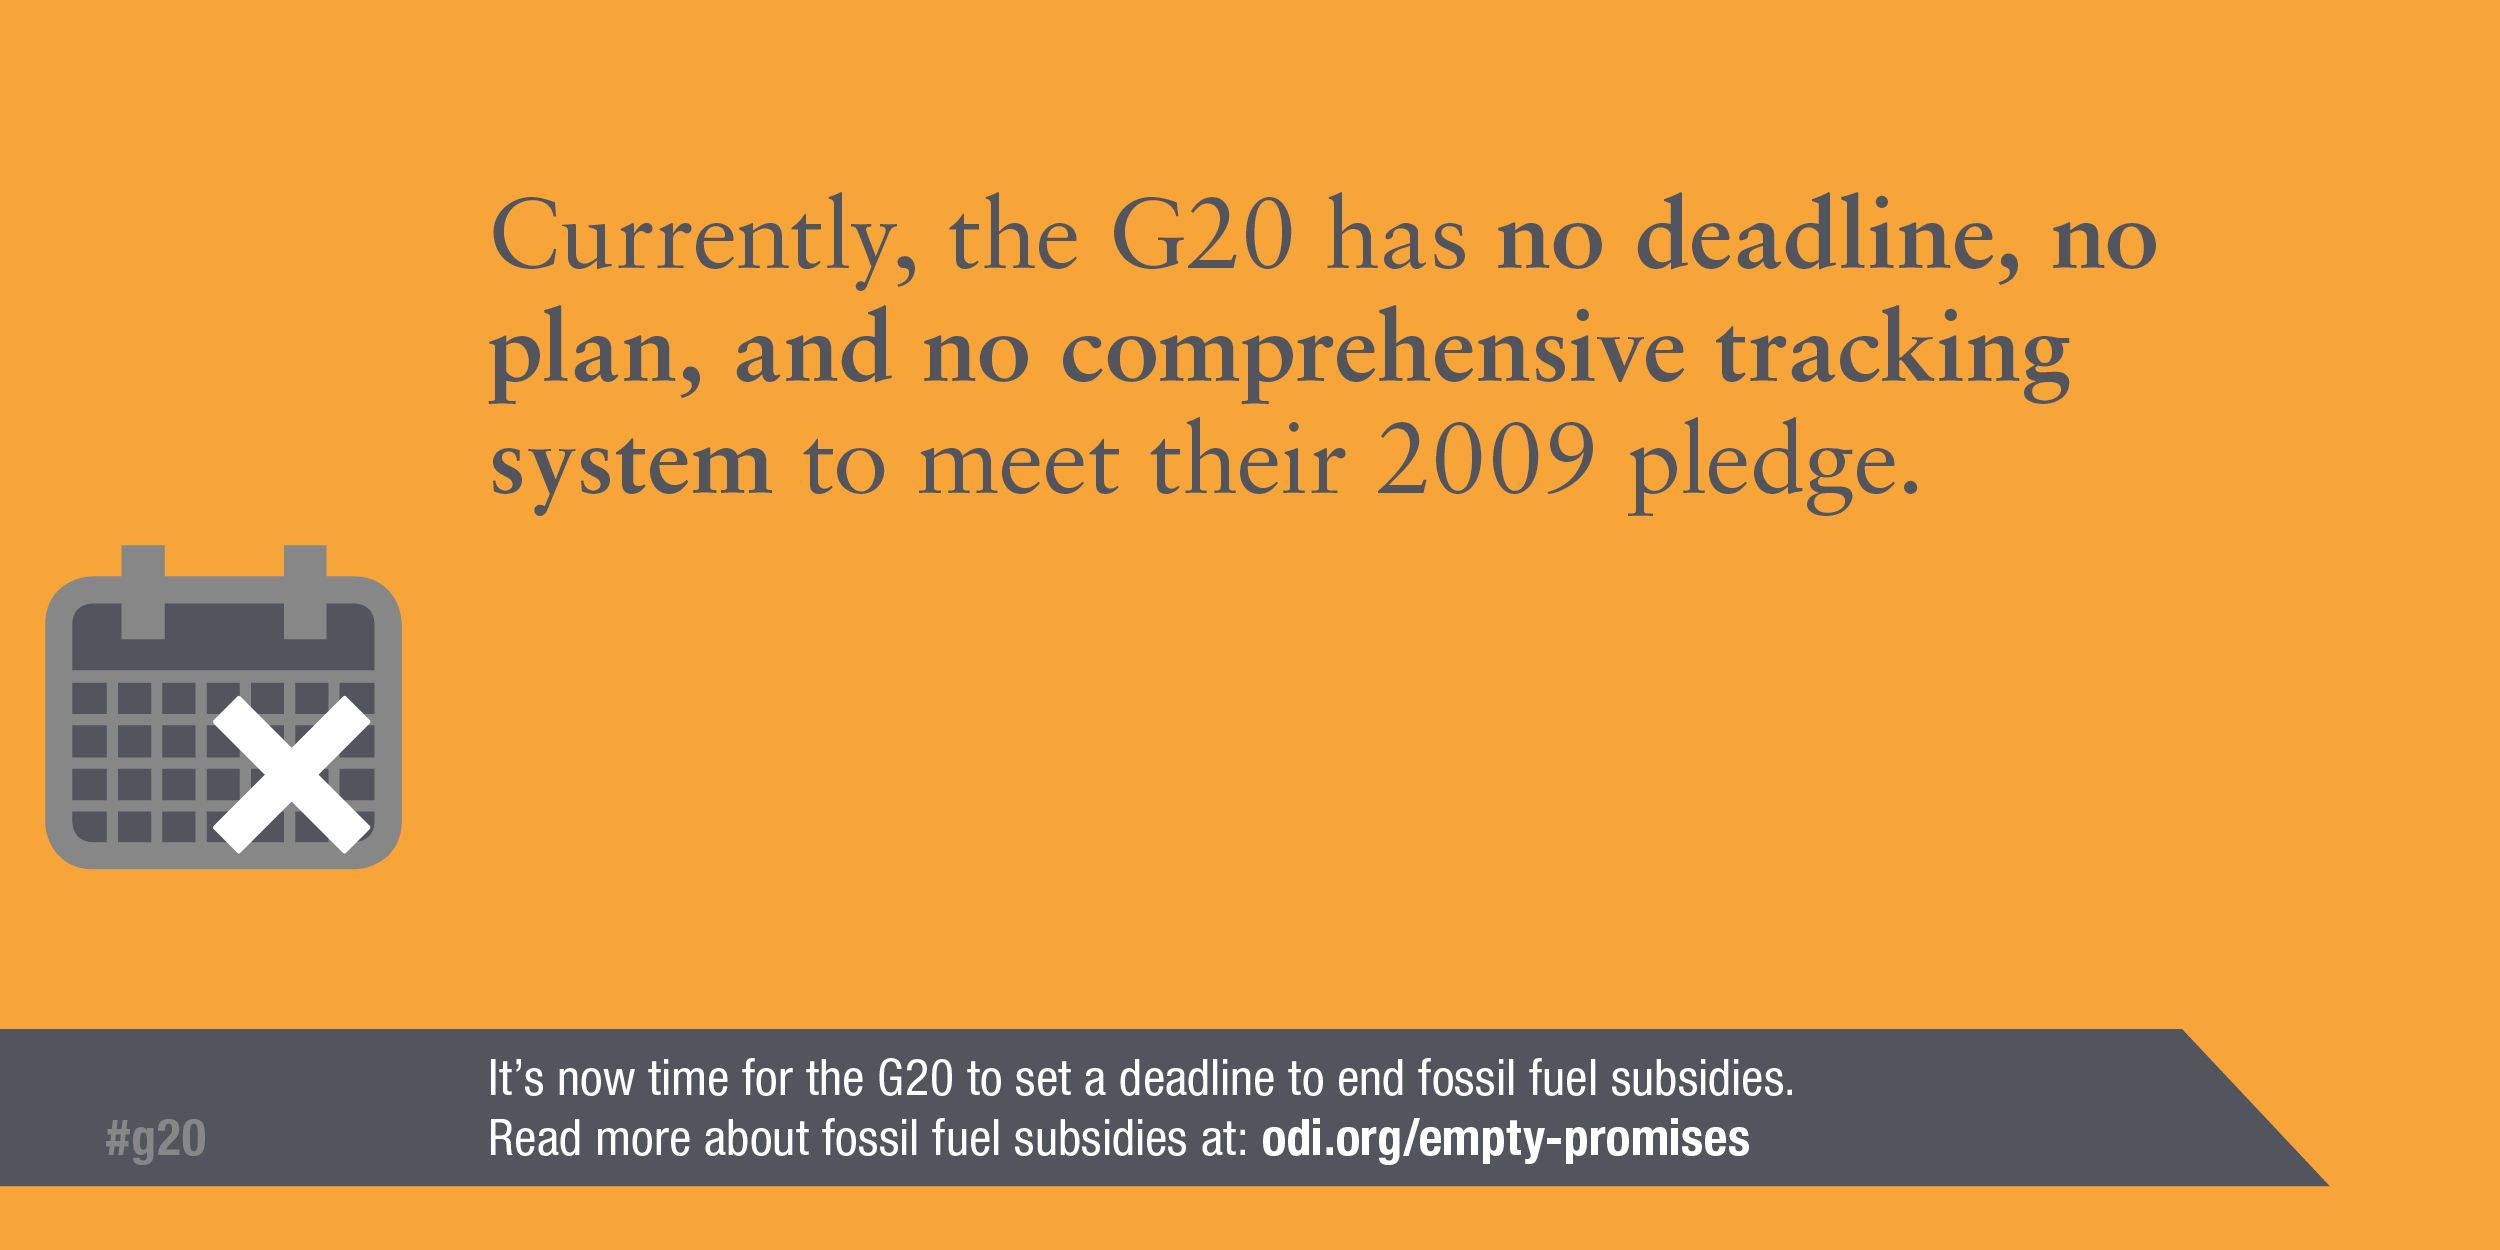 Infographic: Currently the G20 has no plan, deadline, or tracking system to meet their 2009 pledge